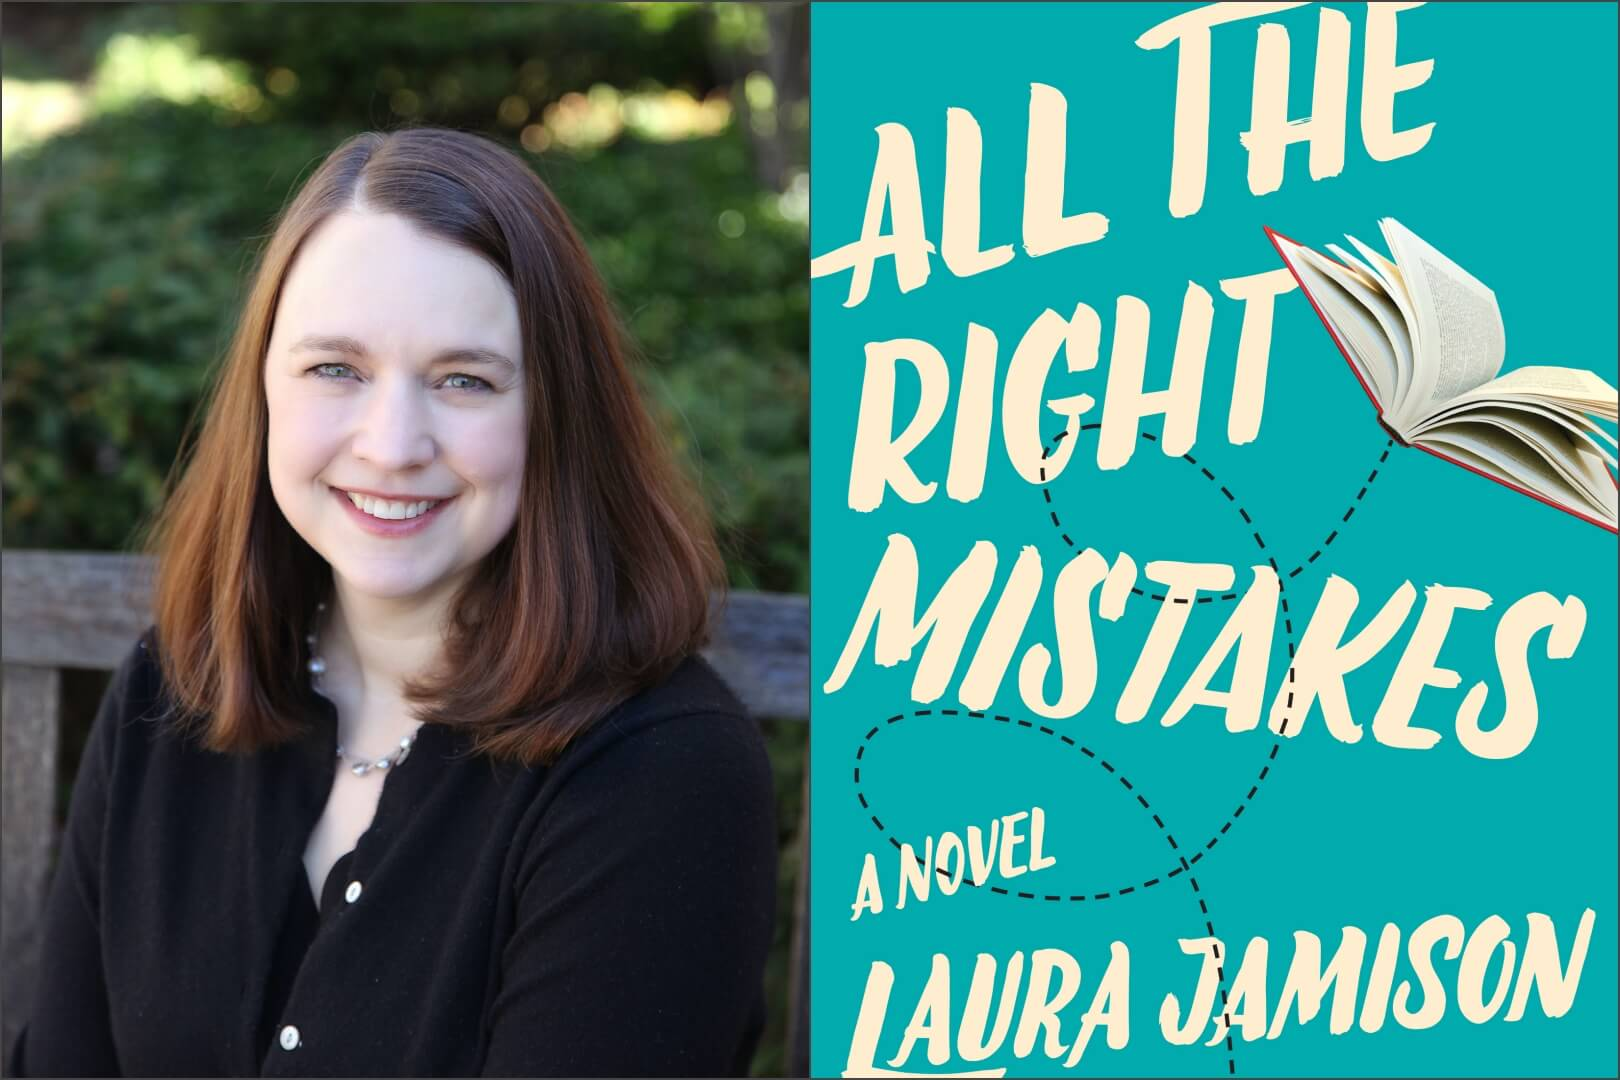 laura jamison interview - book club chat